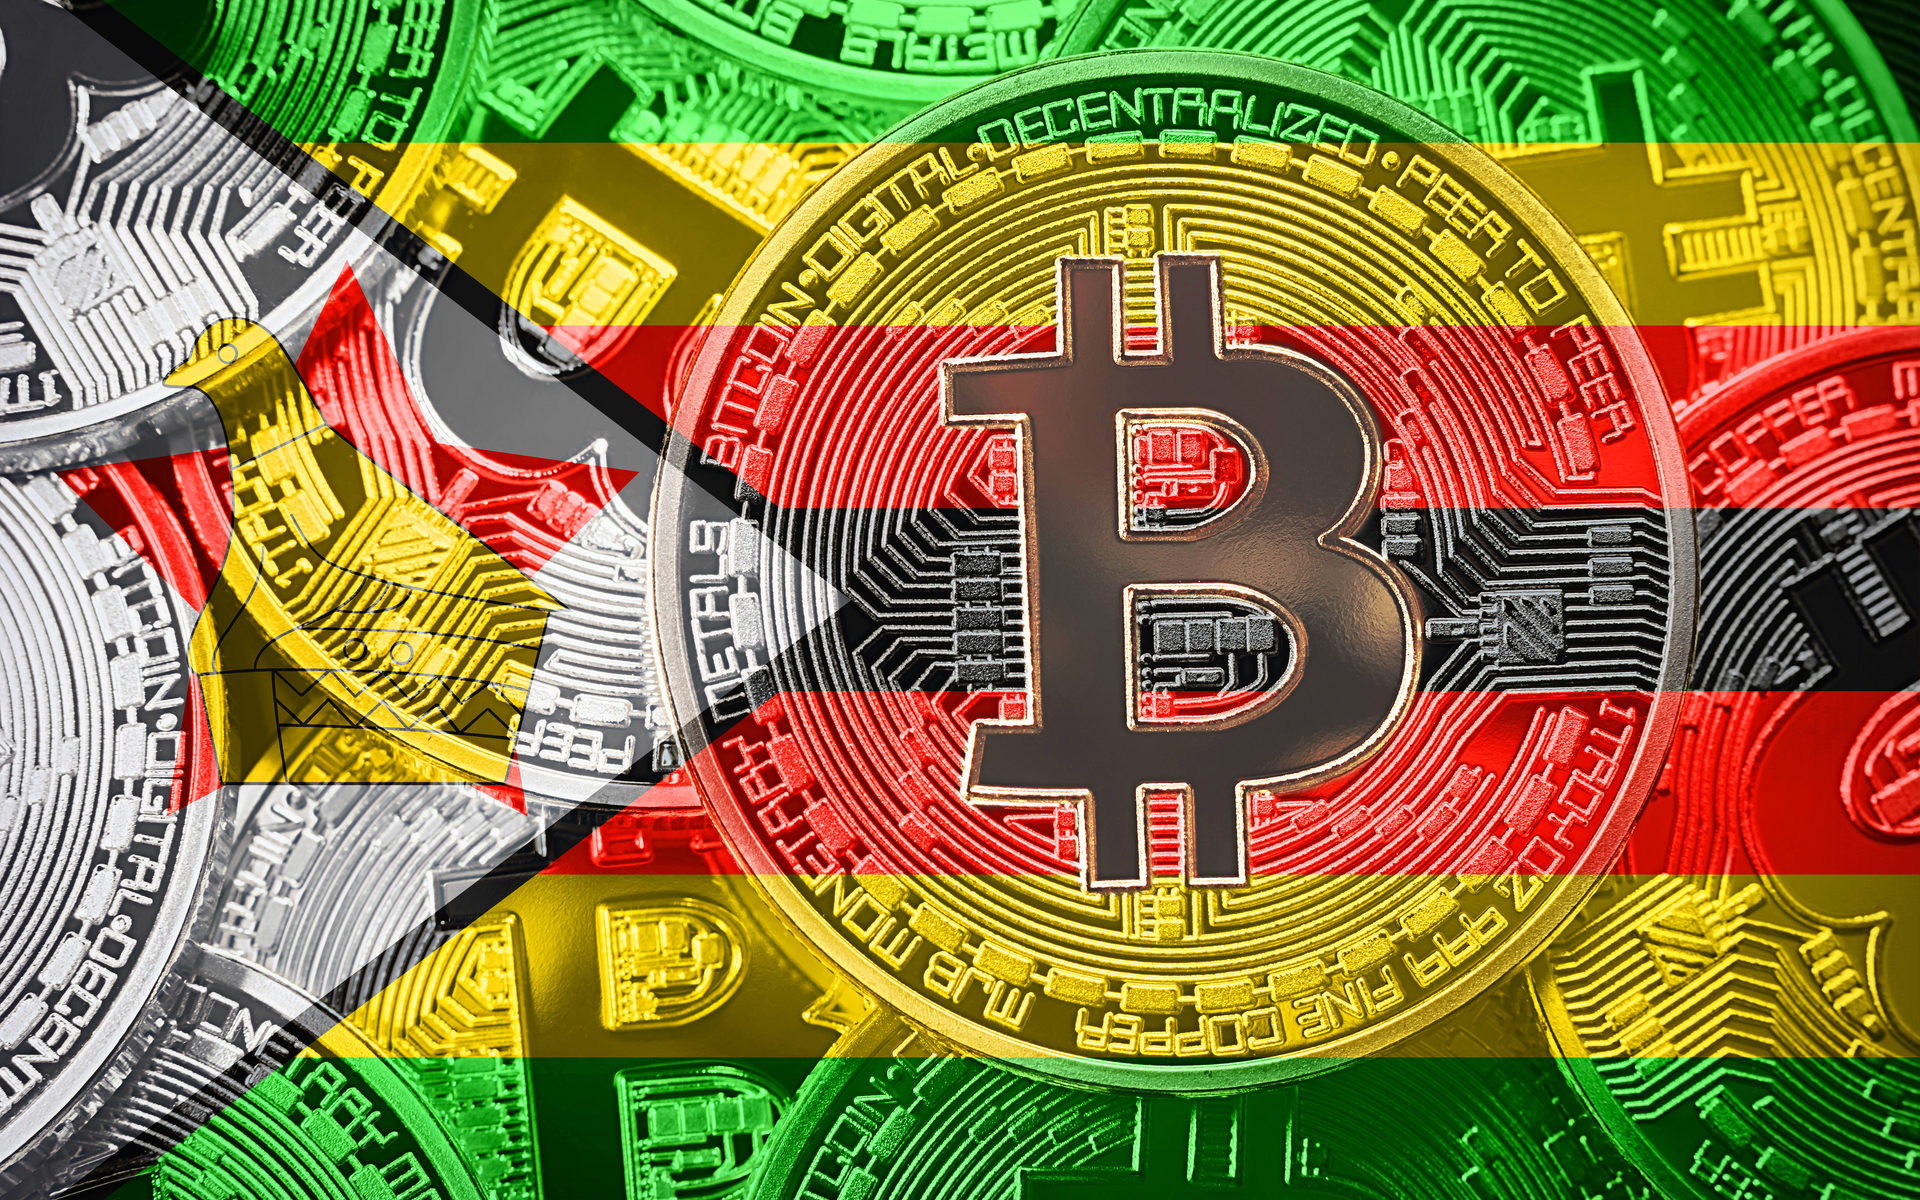 bitcoin use rising in zimbabwe